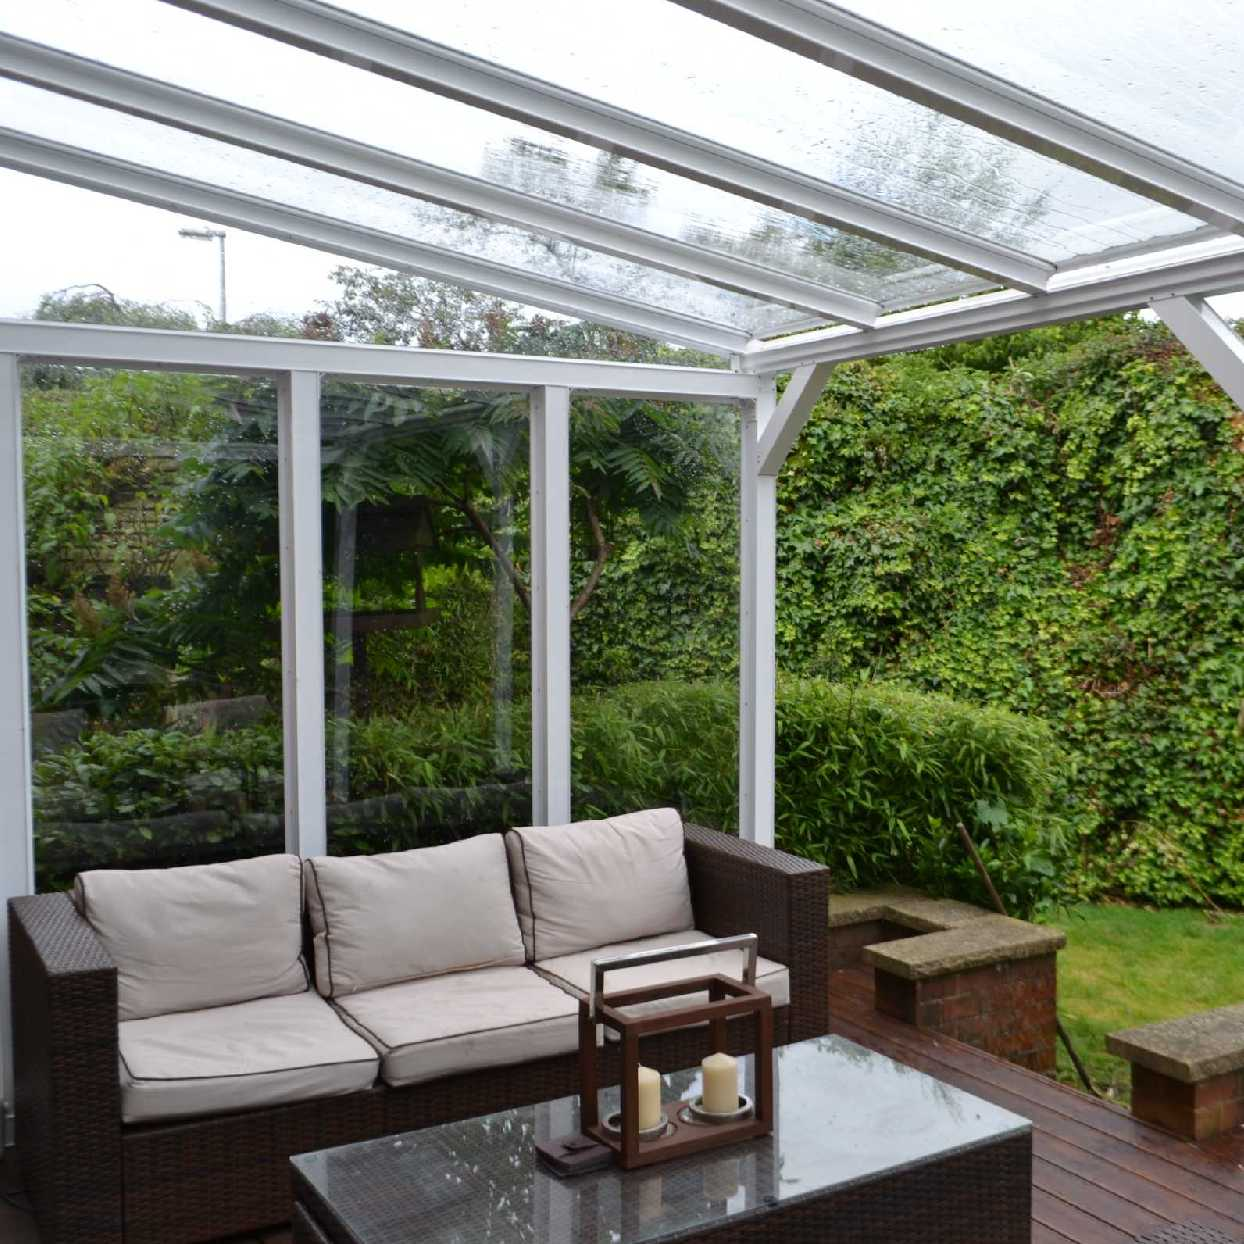 Great selection of Omega Smart White Lean-To Canopy with 16mm Polycarbonate Glazing - 10.6m (W) x 3.0m (P), (5) Supporting Posts